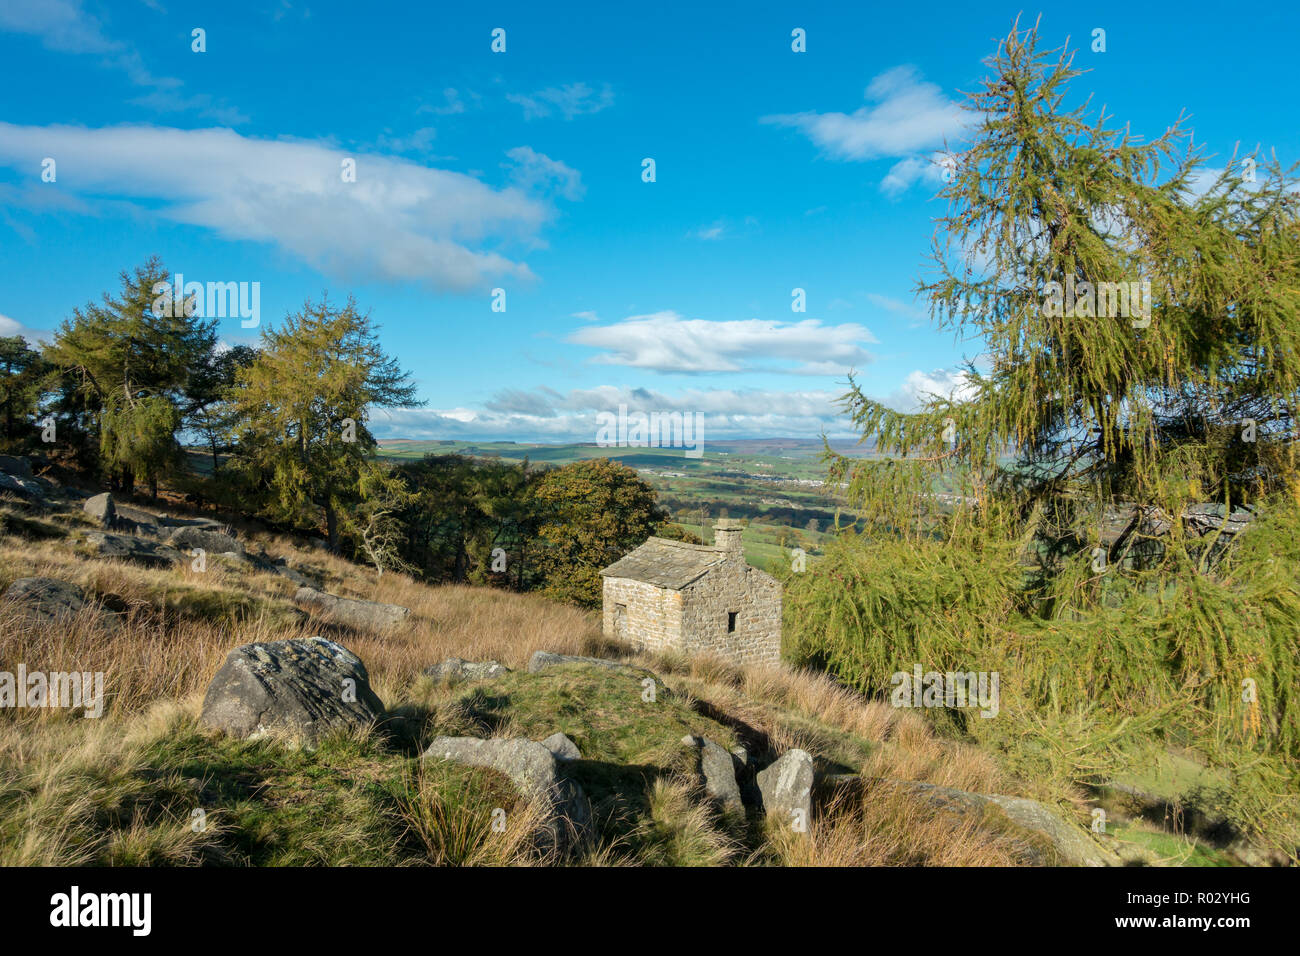 The shepherd's hut and larch trees in autumn - Unusual views of Ilkley moor, West Yorkshire, UK - Stock Image